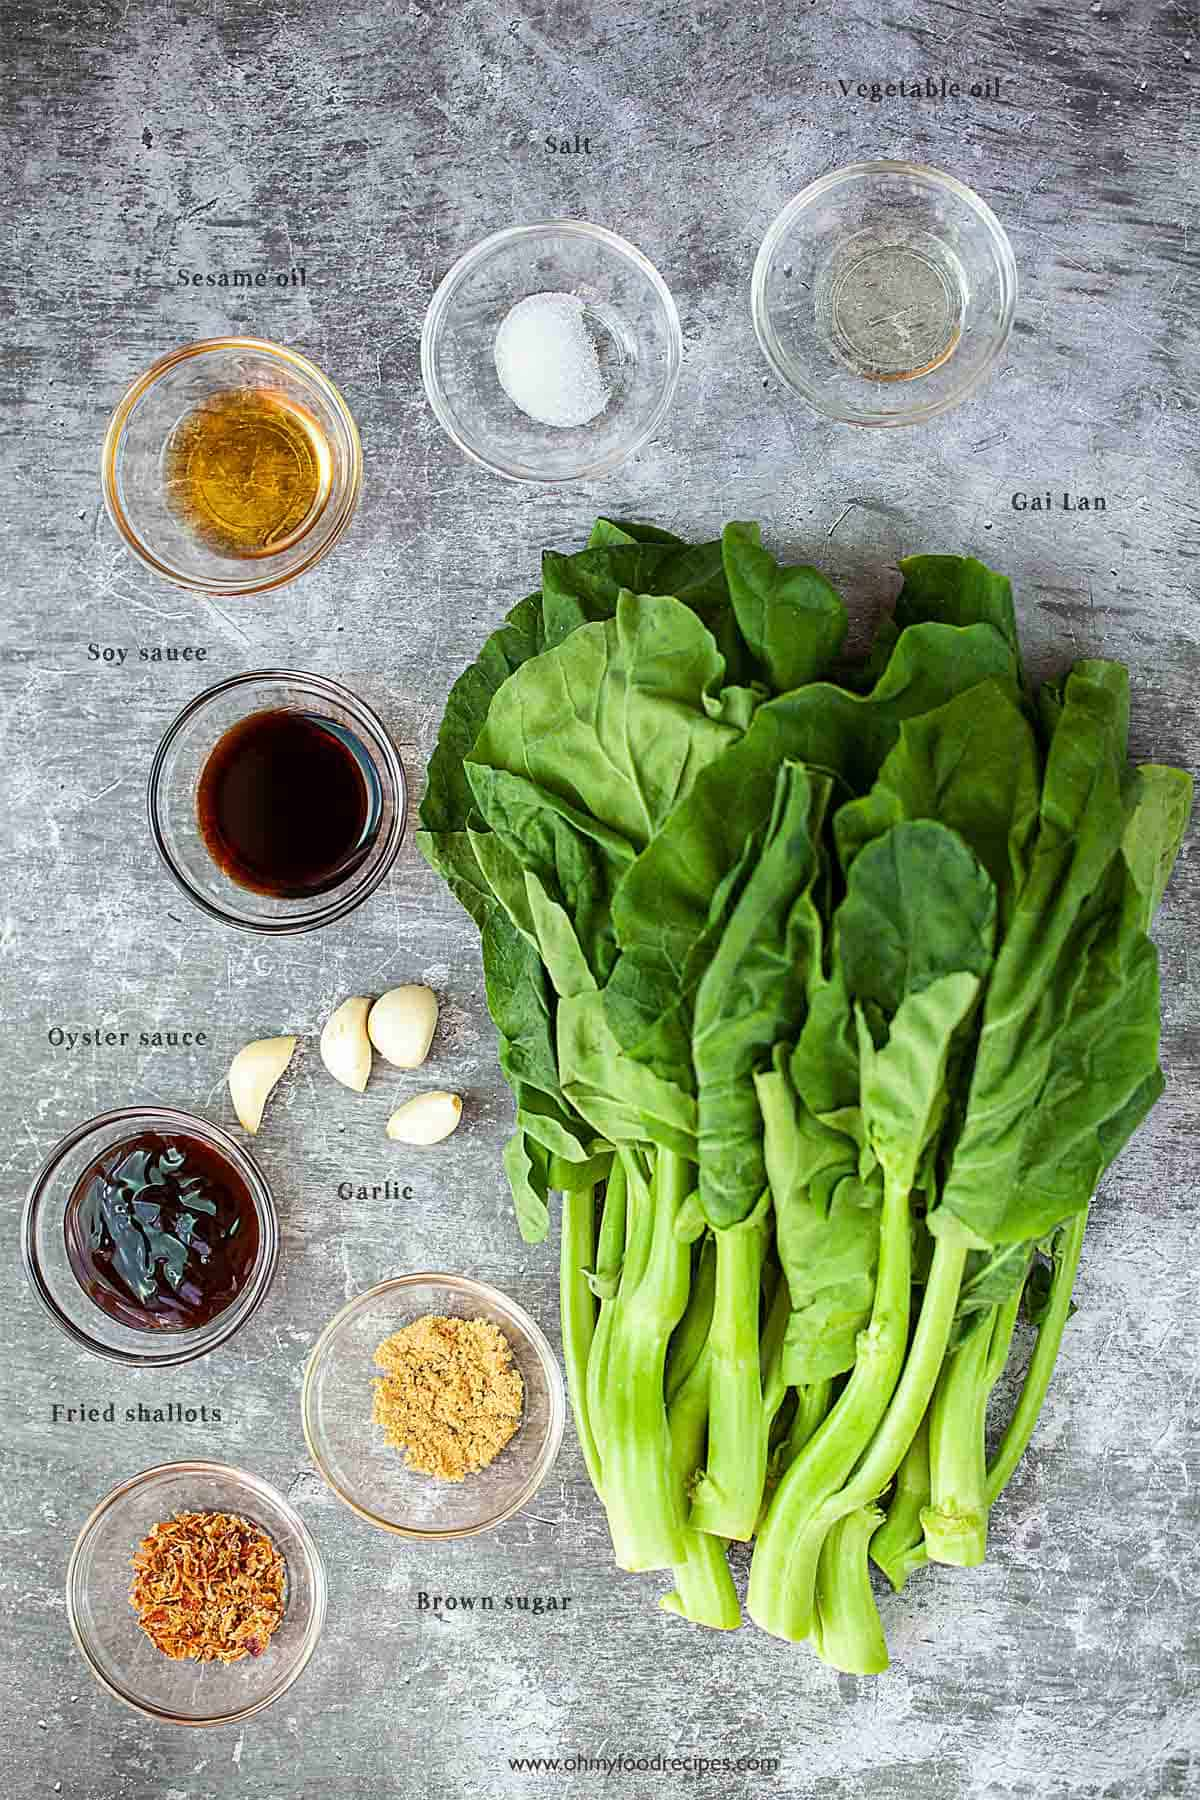 ingredients for Chinese broccoli with oyster sauce